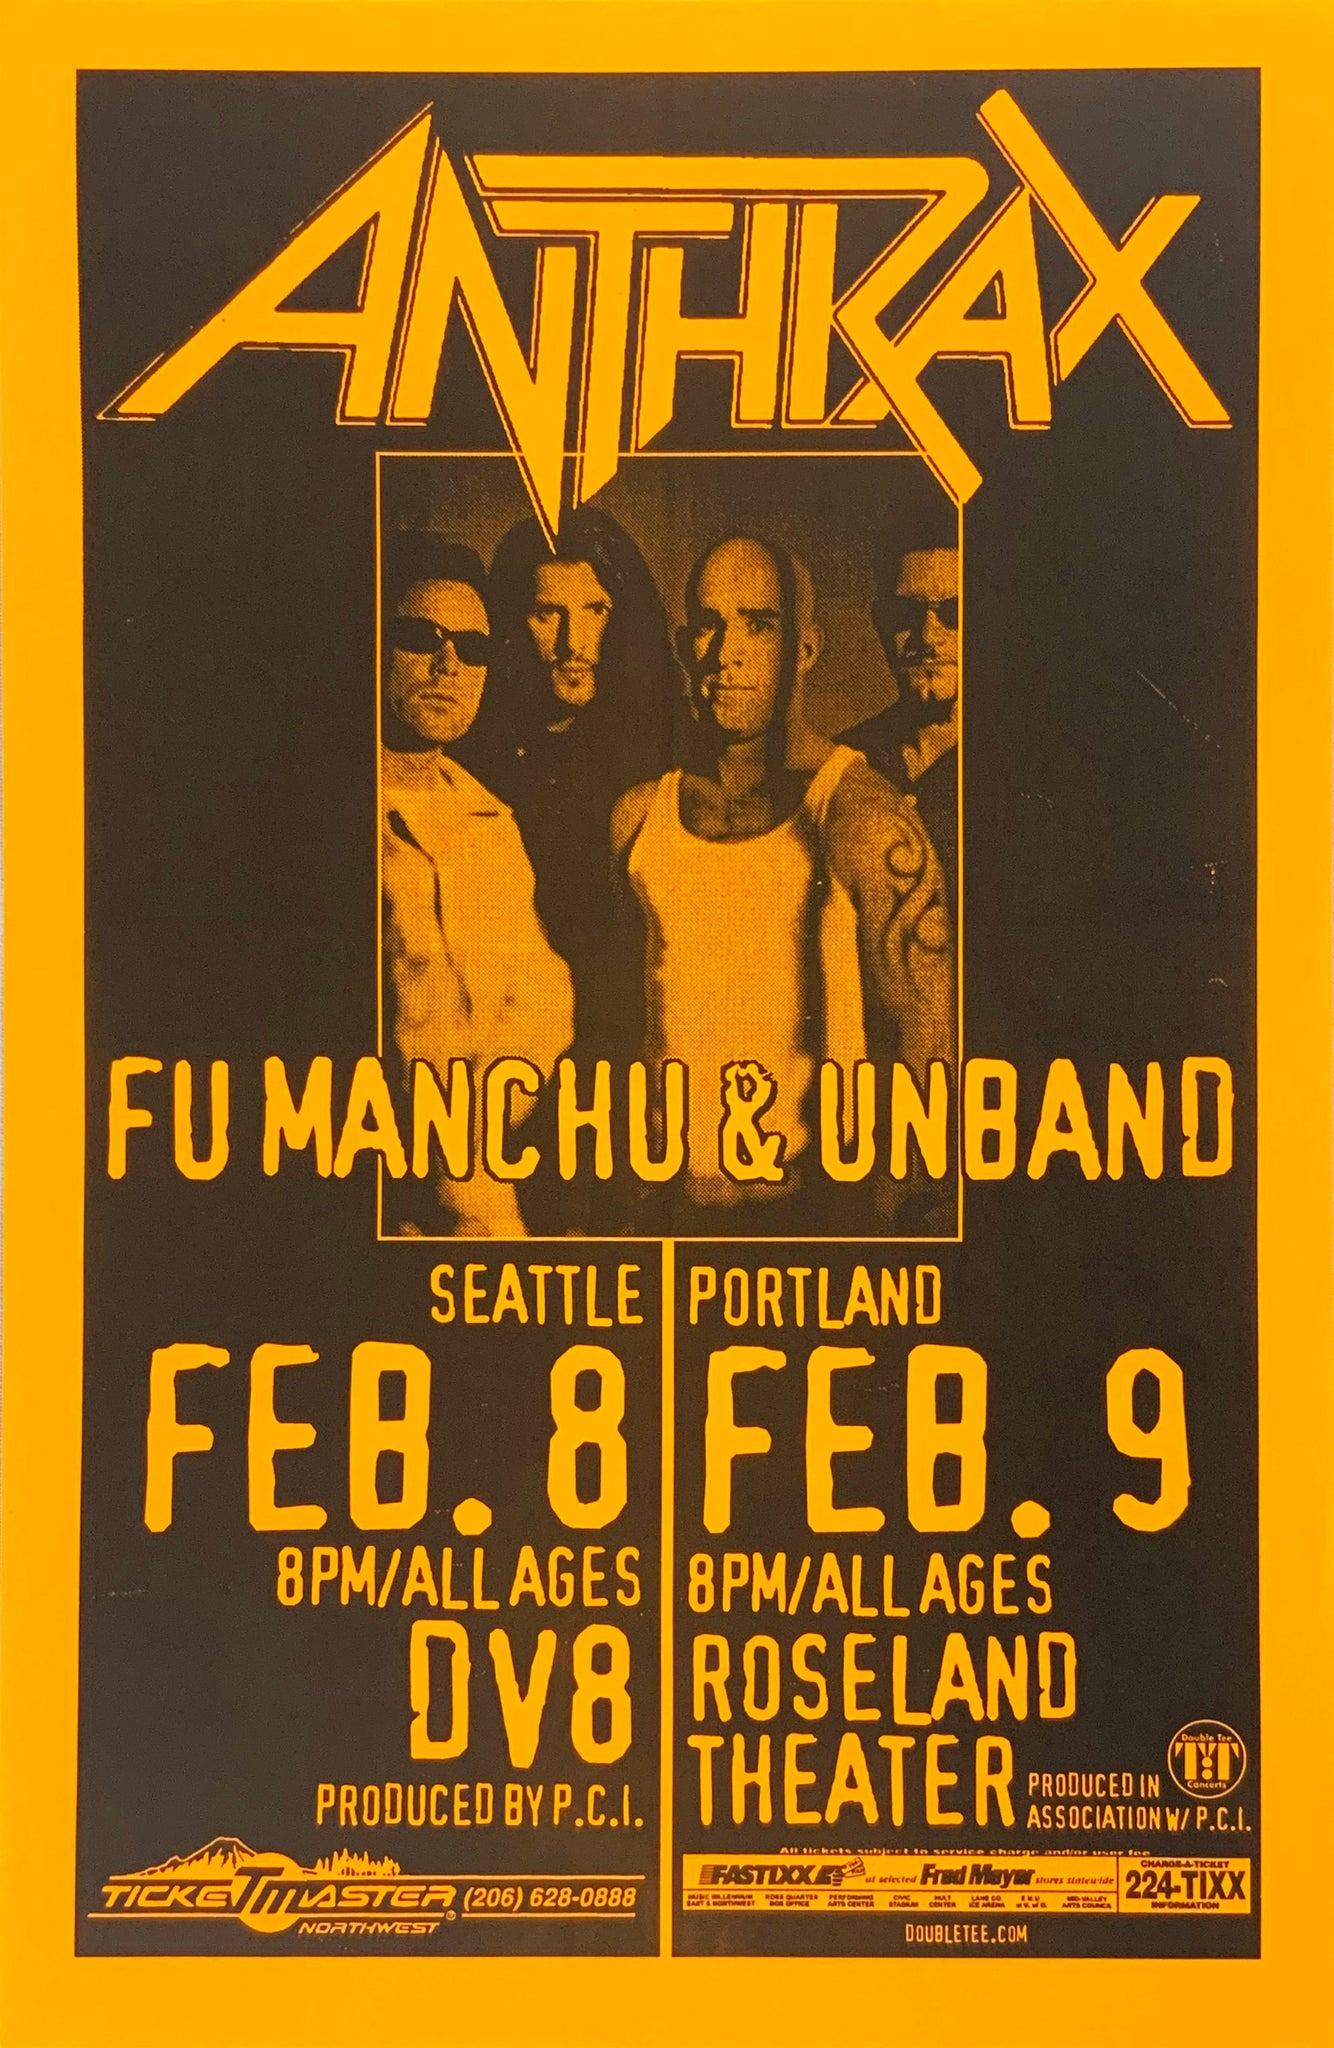 Anthrax Roseland Theater February 8th Poster